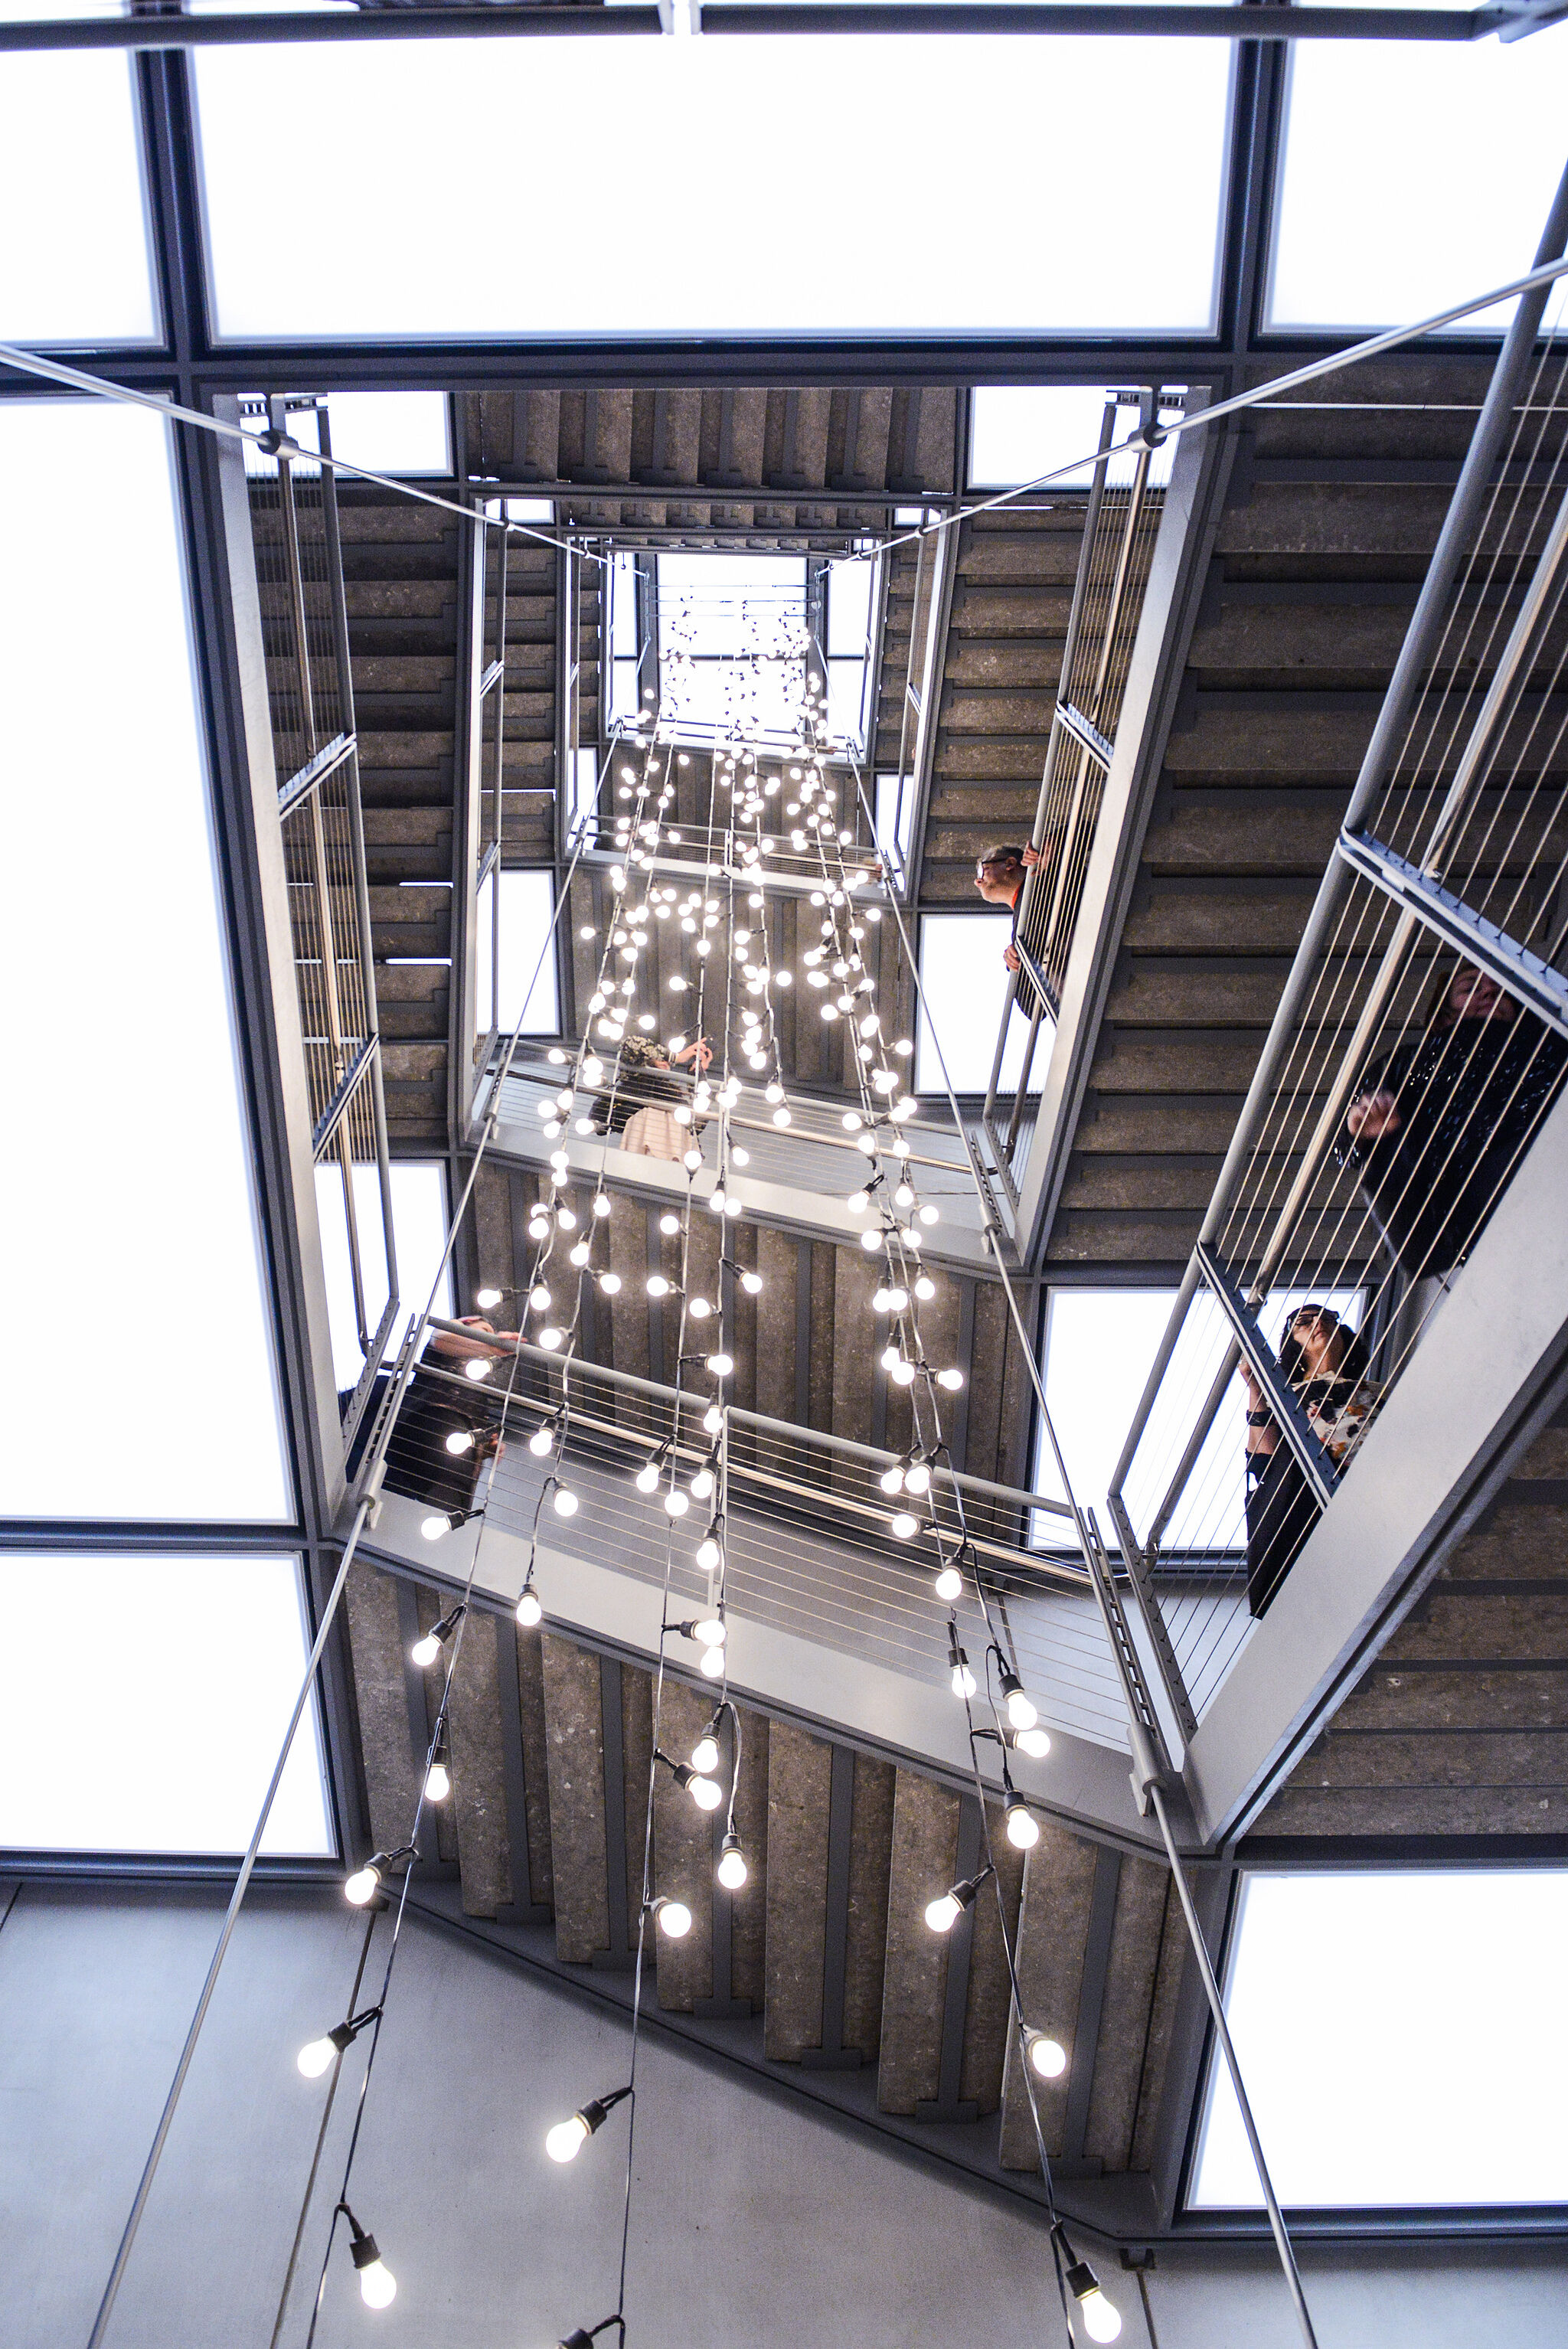 An installation in the Whitney's stairwell featuring white string lights.